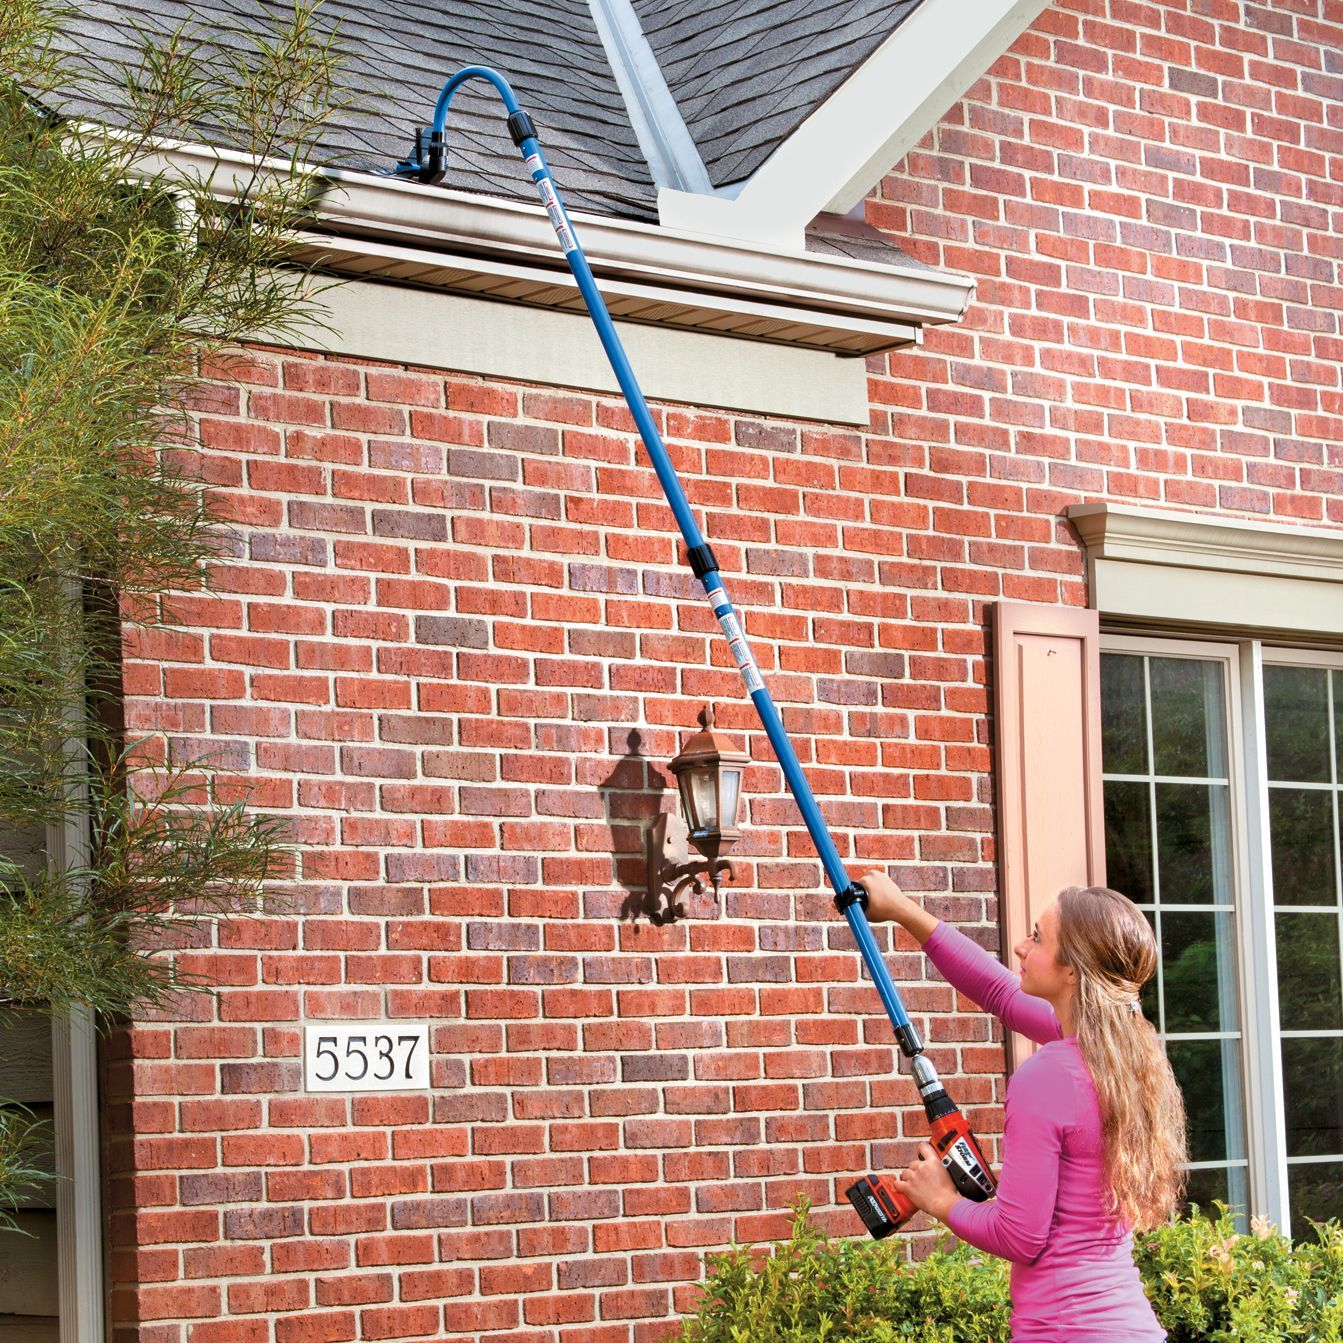 Guttersweep rotary gutter cleaning system the easy way to